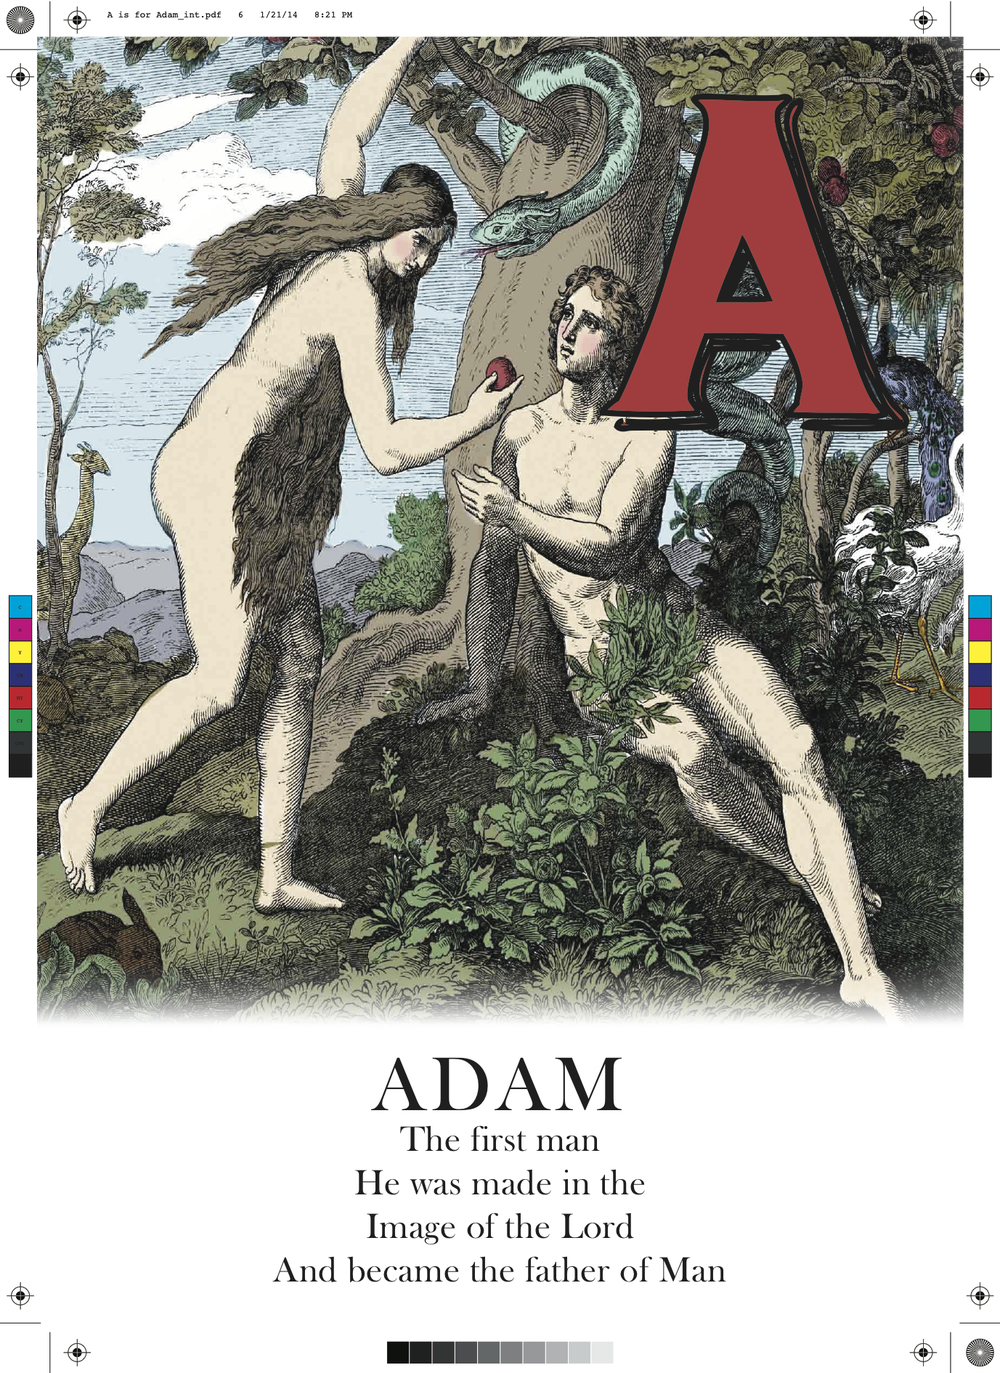 A for Adam exc 3.jpg